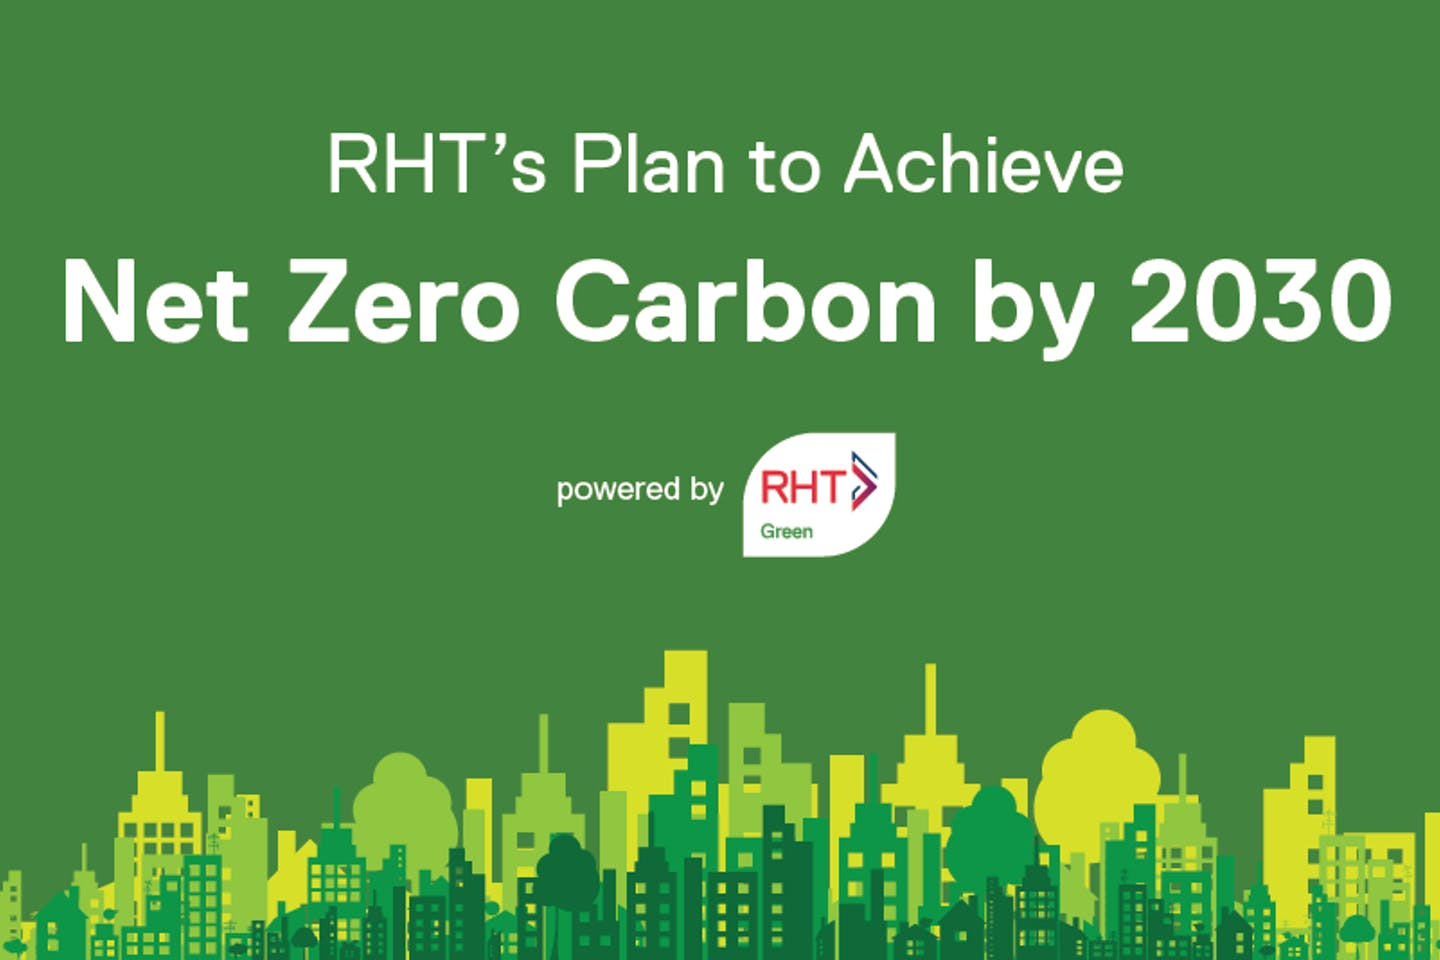 ONE RHT unveils plan to achieve net zero carbon by 2030, appoints its first Chief Sustainability Officer